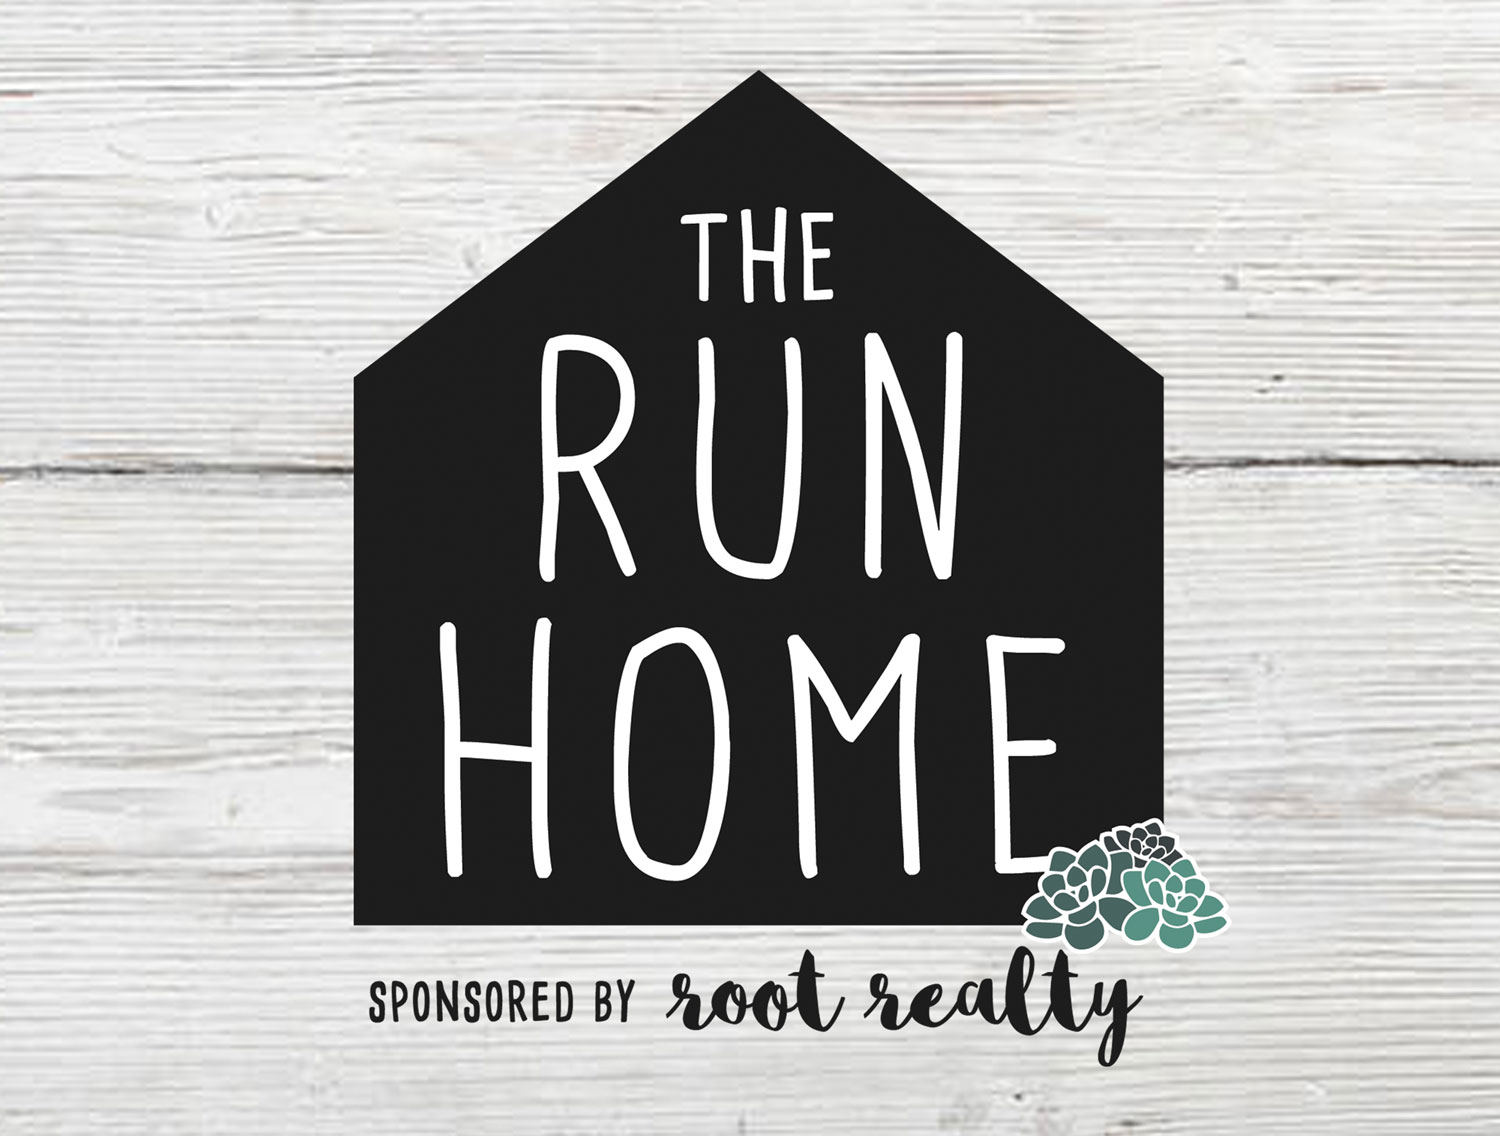 The Run Home 5K logo sponsored by Root Realty in Jacksonville, FL.